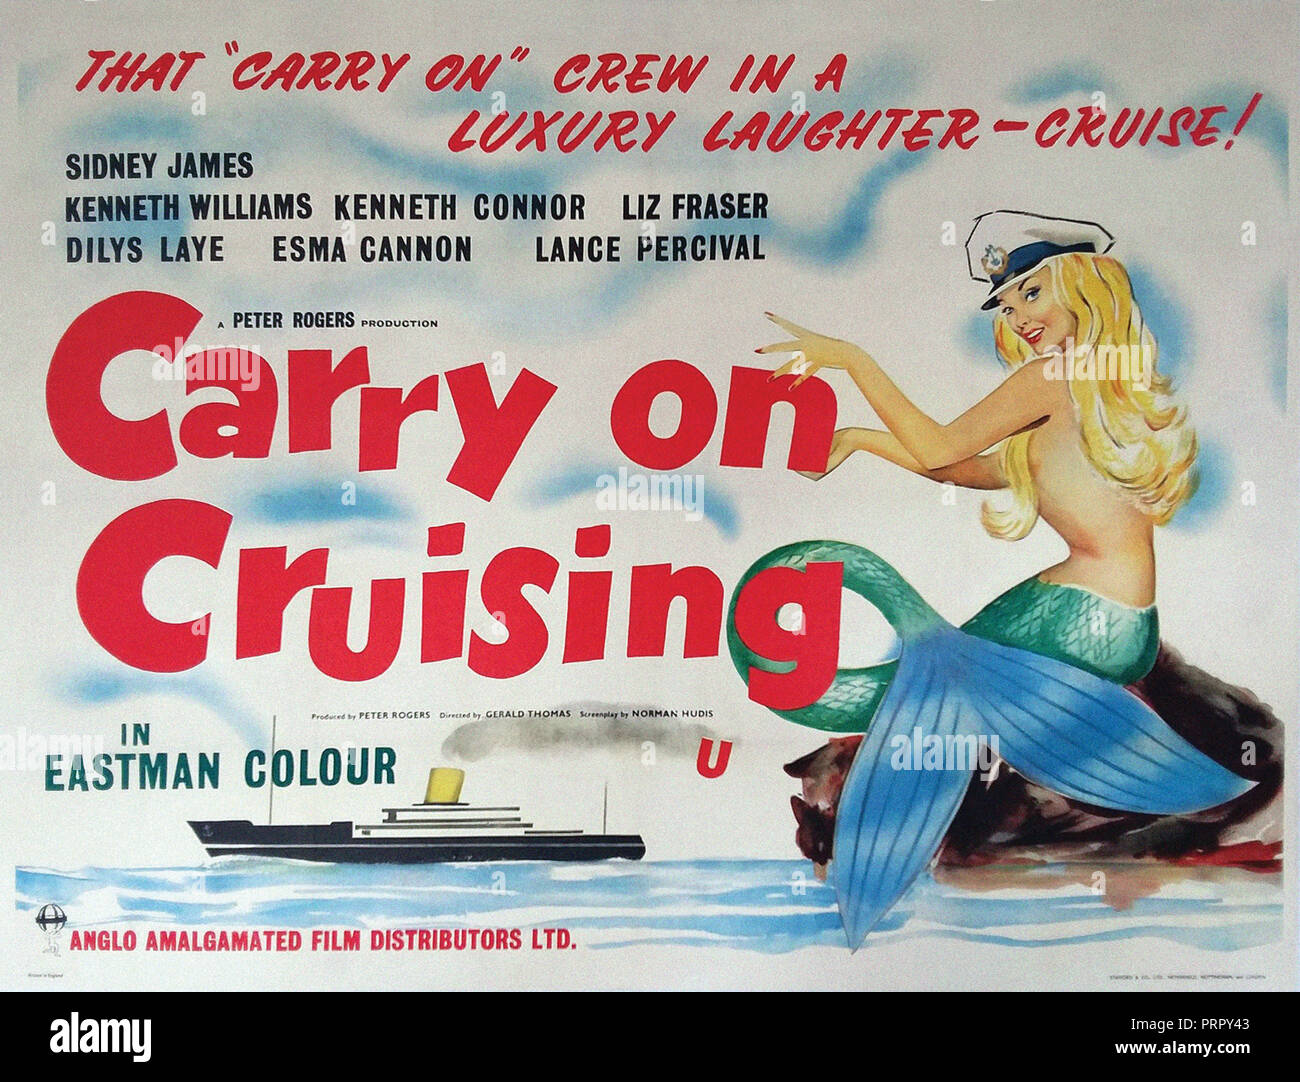 Prod DB © Anglo-Amalgamated Film Distributors - Peter Rogers Productions / DR CARRY ON CRUISING de Gerald Thomas et Ralph Thomas (non credite) 1962 GB - Stock Image